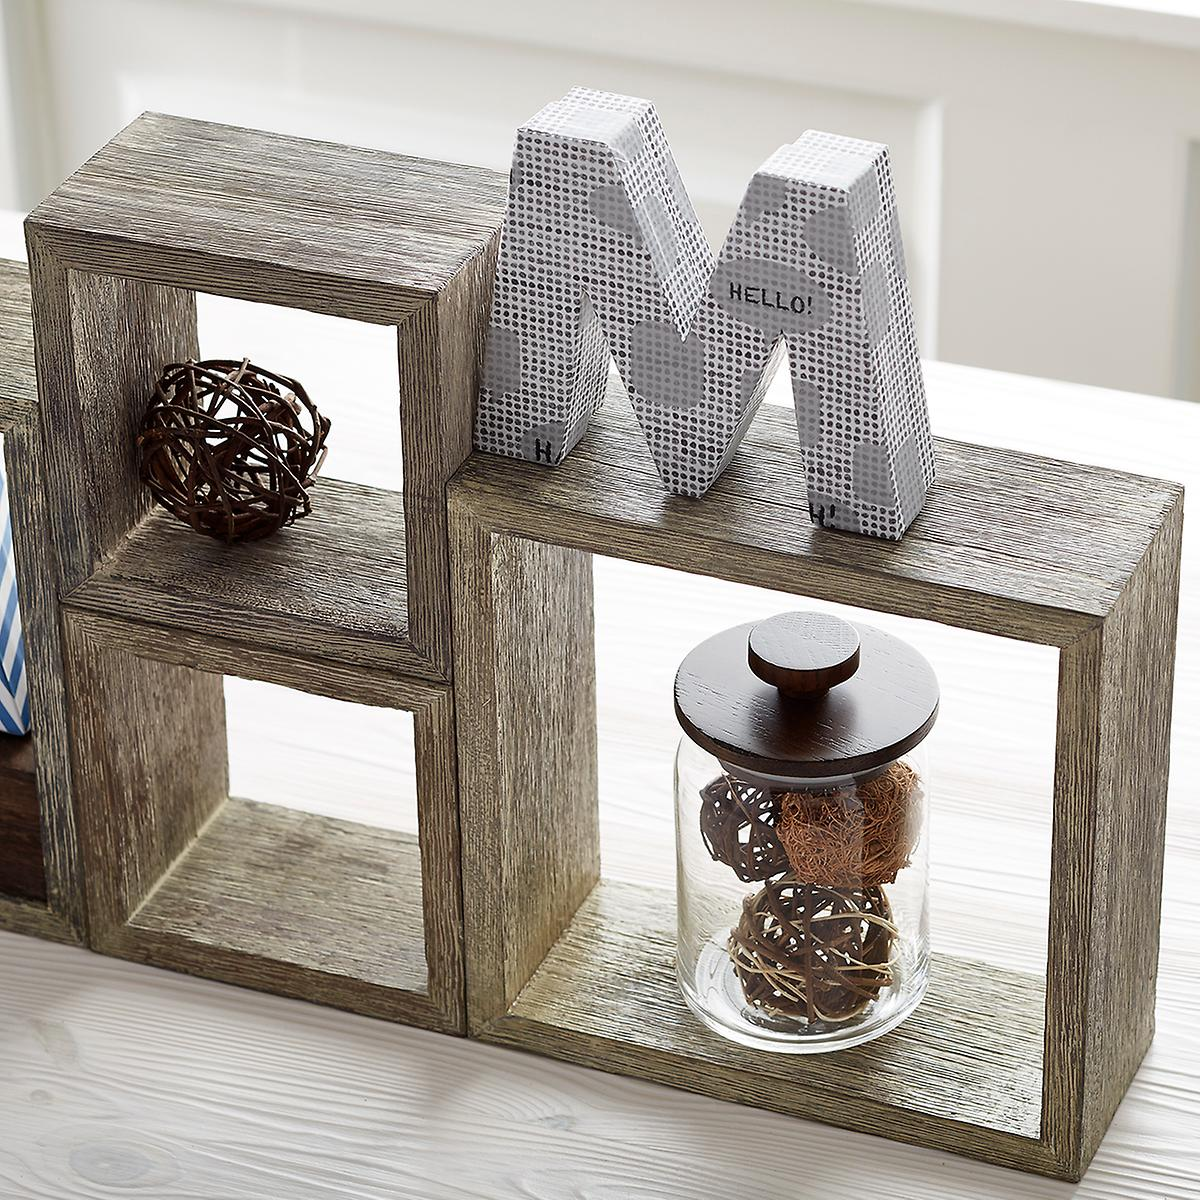 Space in the kitchen by adding shelves and glass canisters with seals - Roll Over To Zoom